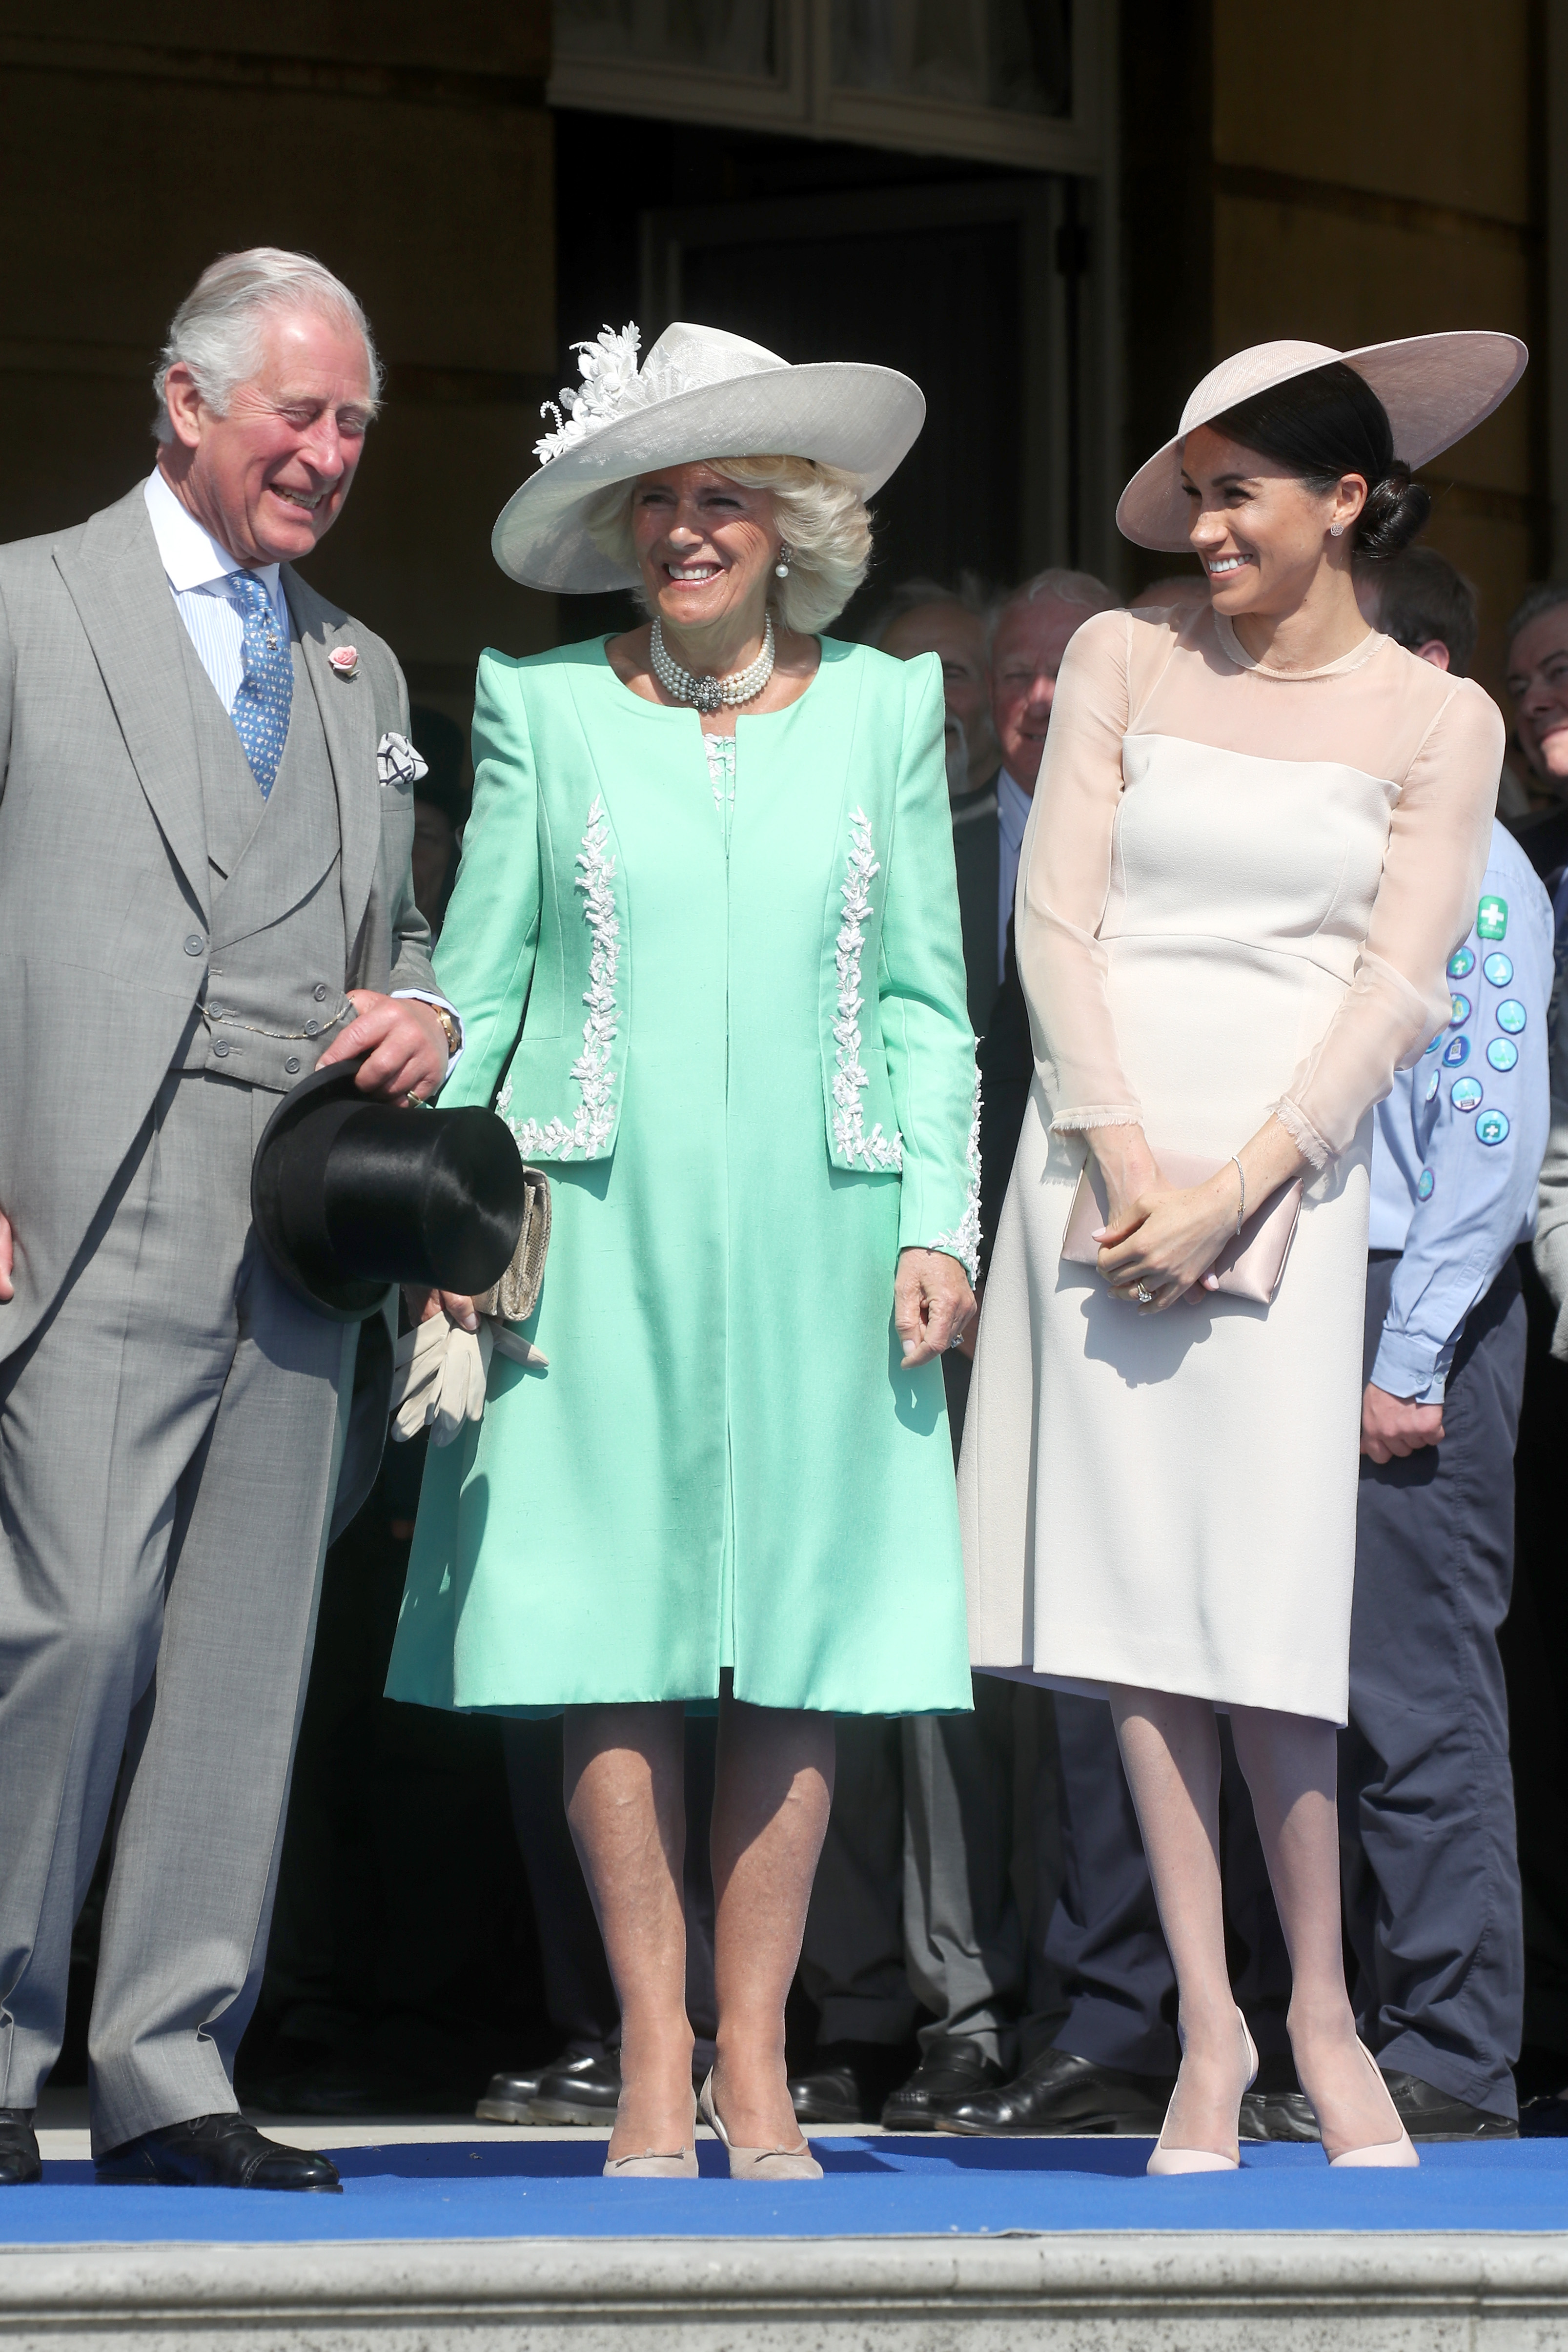 Prince Charles Camilla Parker Bowles and Meghan Markle